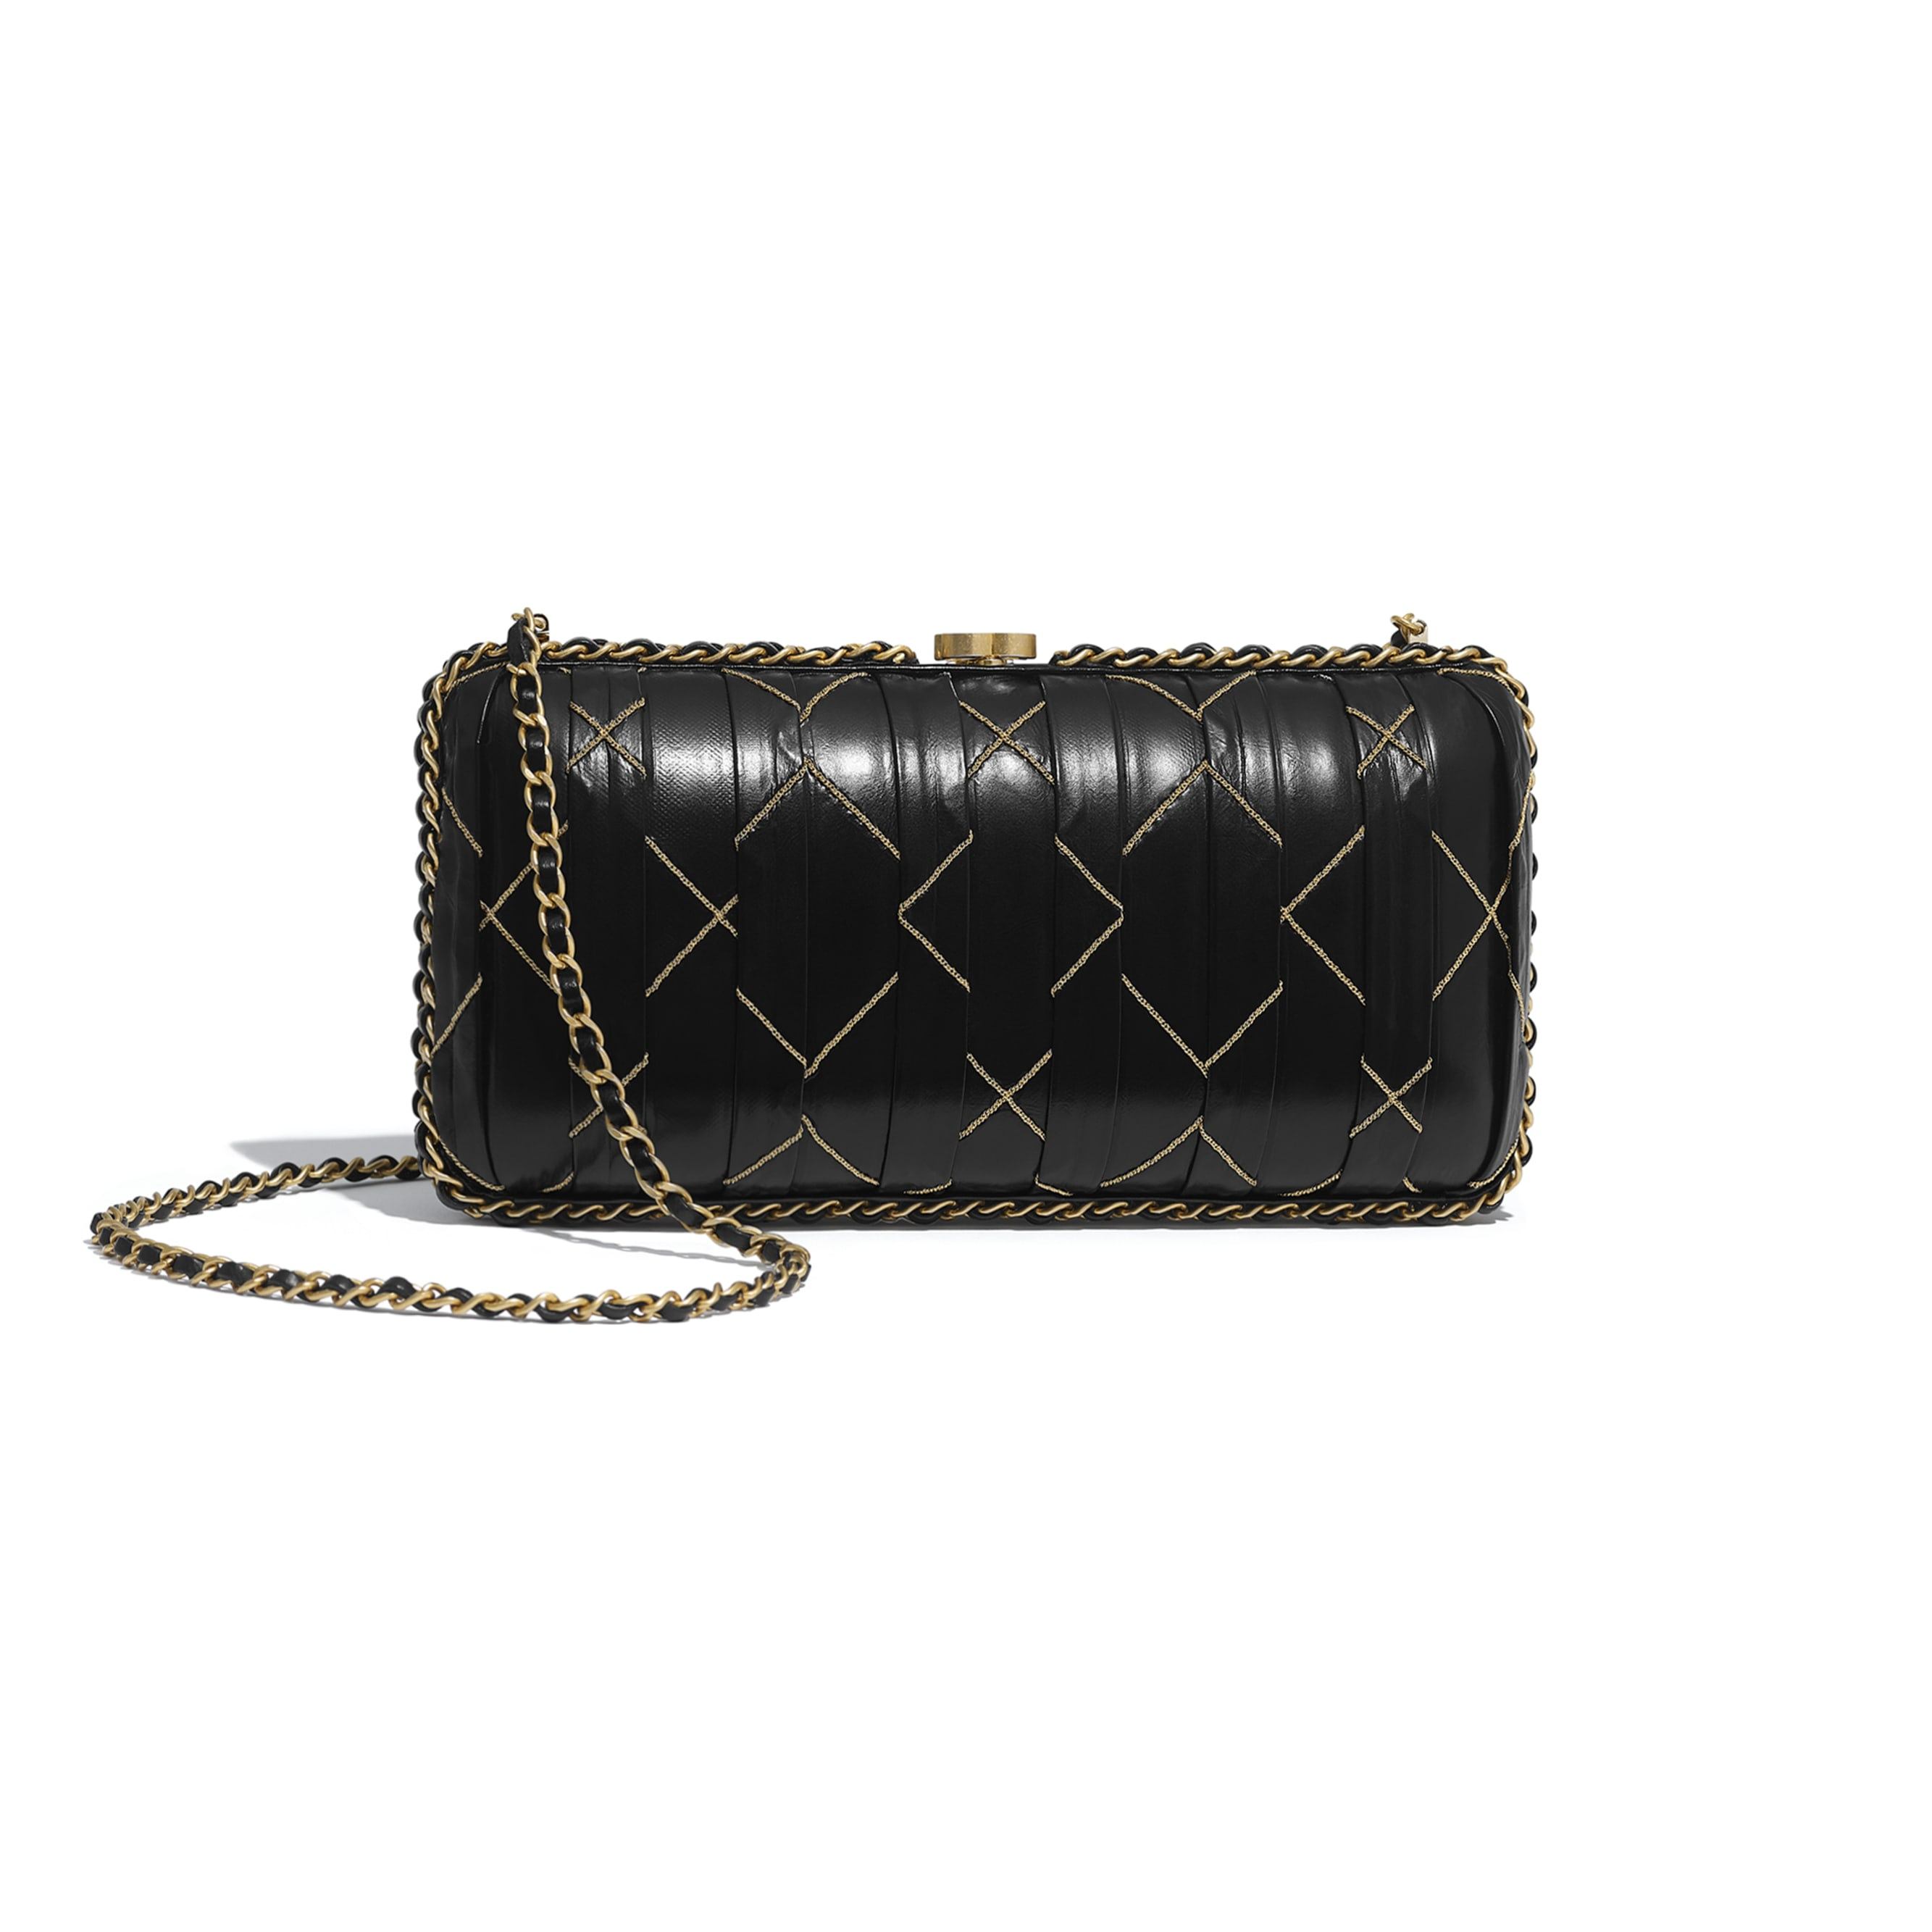 Evening Bag - Black - Calfskin & Gold-Tone Metal - Alternative view - see standard sized version